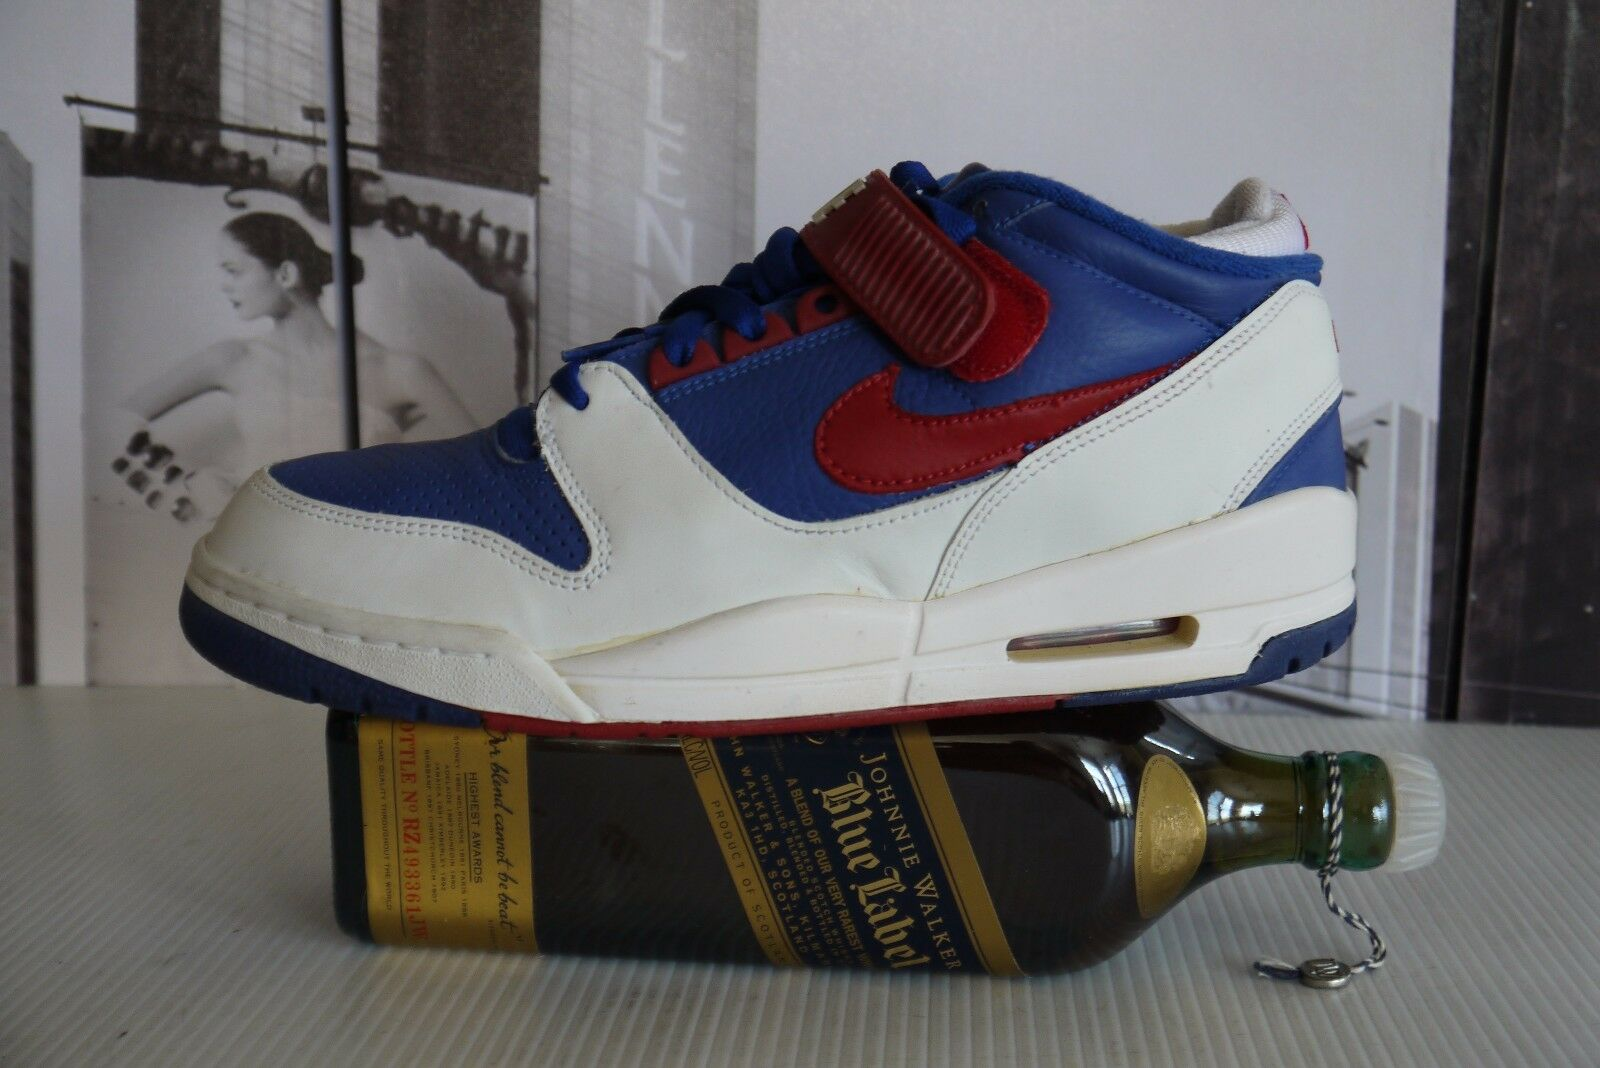 promo code 42087 c4b0a 2004 2004 2004 NIKE AIR REVOLUTION MID uomo US 9.5 EU 43 Must Have Leather  9ff466